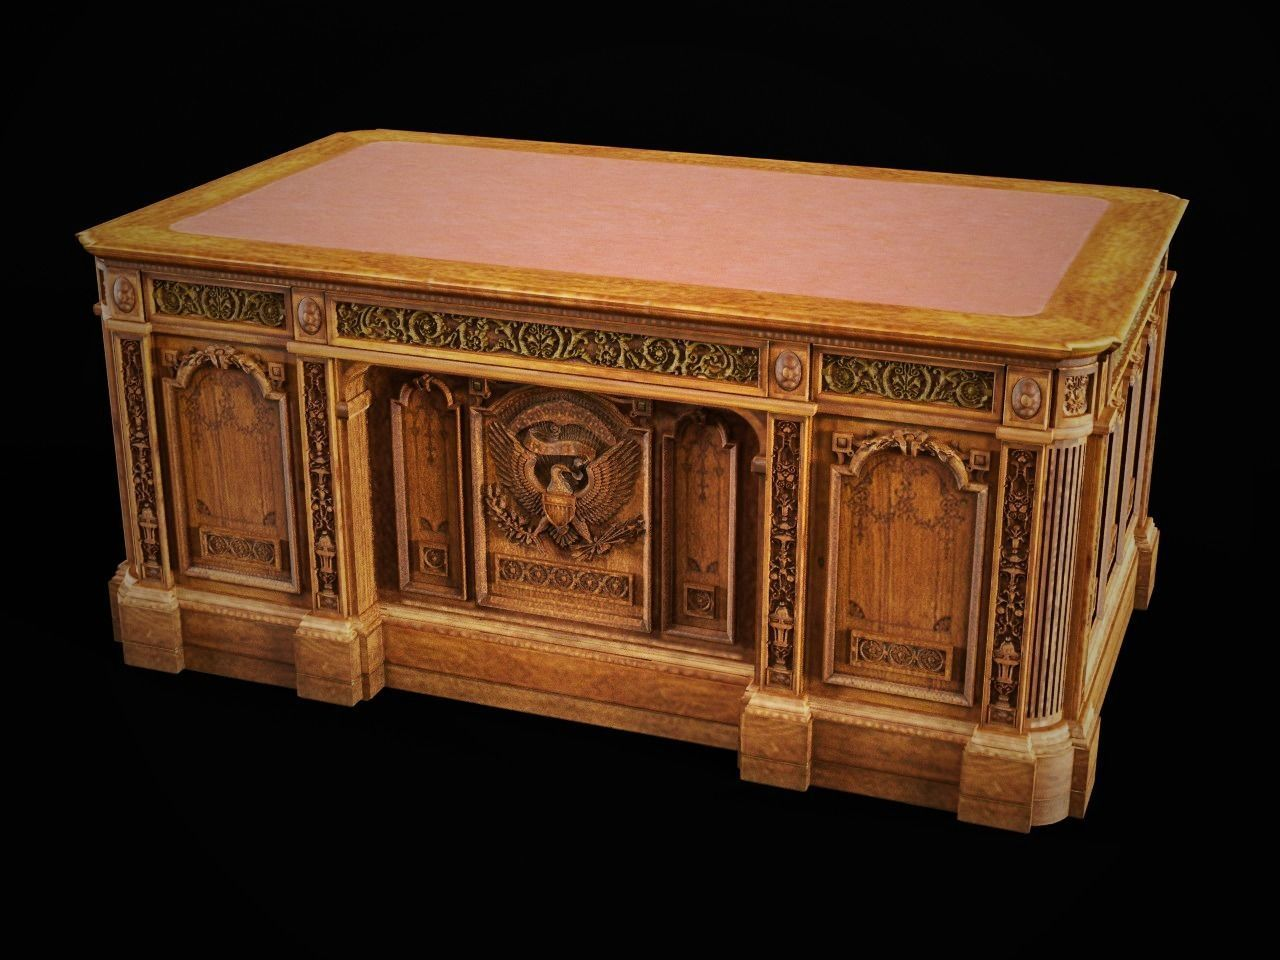 Resolute Desk of the Oval Office